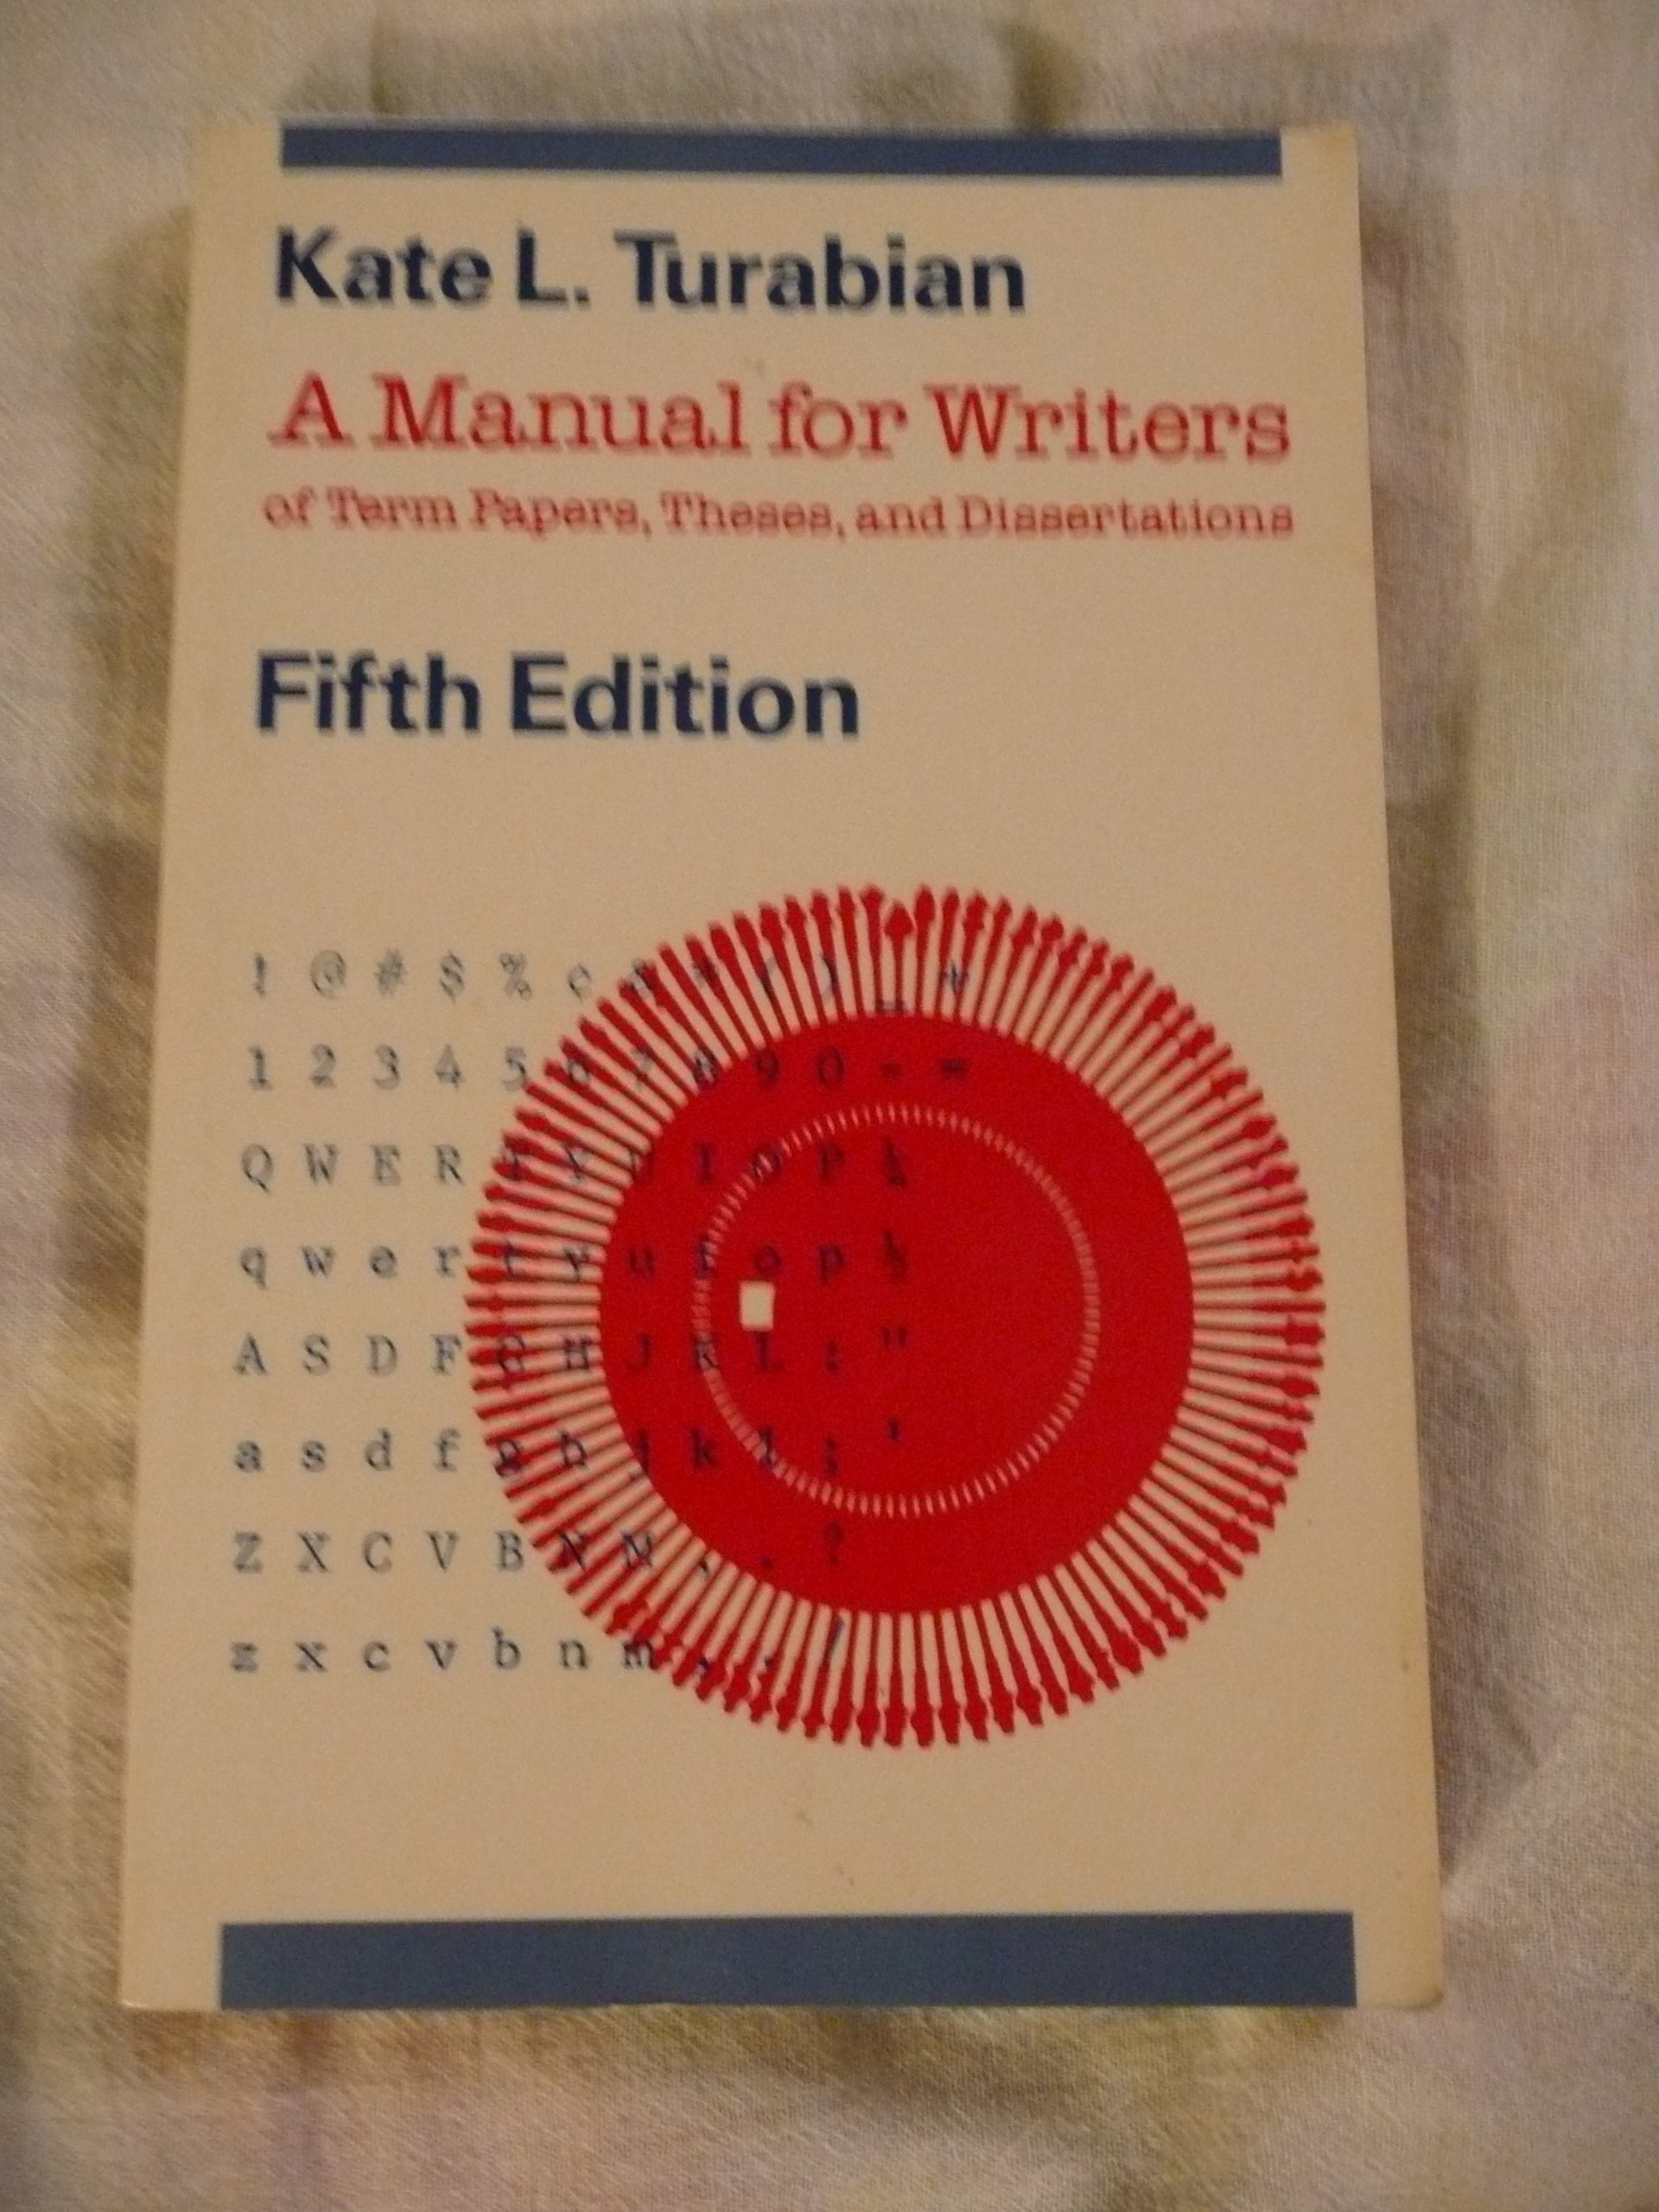 020 91nltv7olql Research Paper Manual For Writers Of Papers Theses And Sensational A Dissertations Ed. 8 Turabian Ninth Edition Full